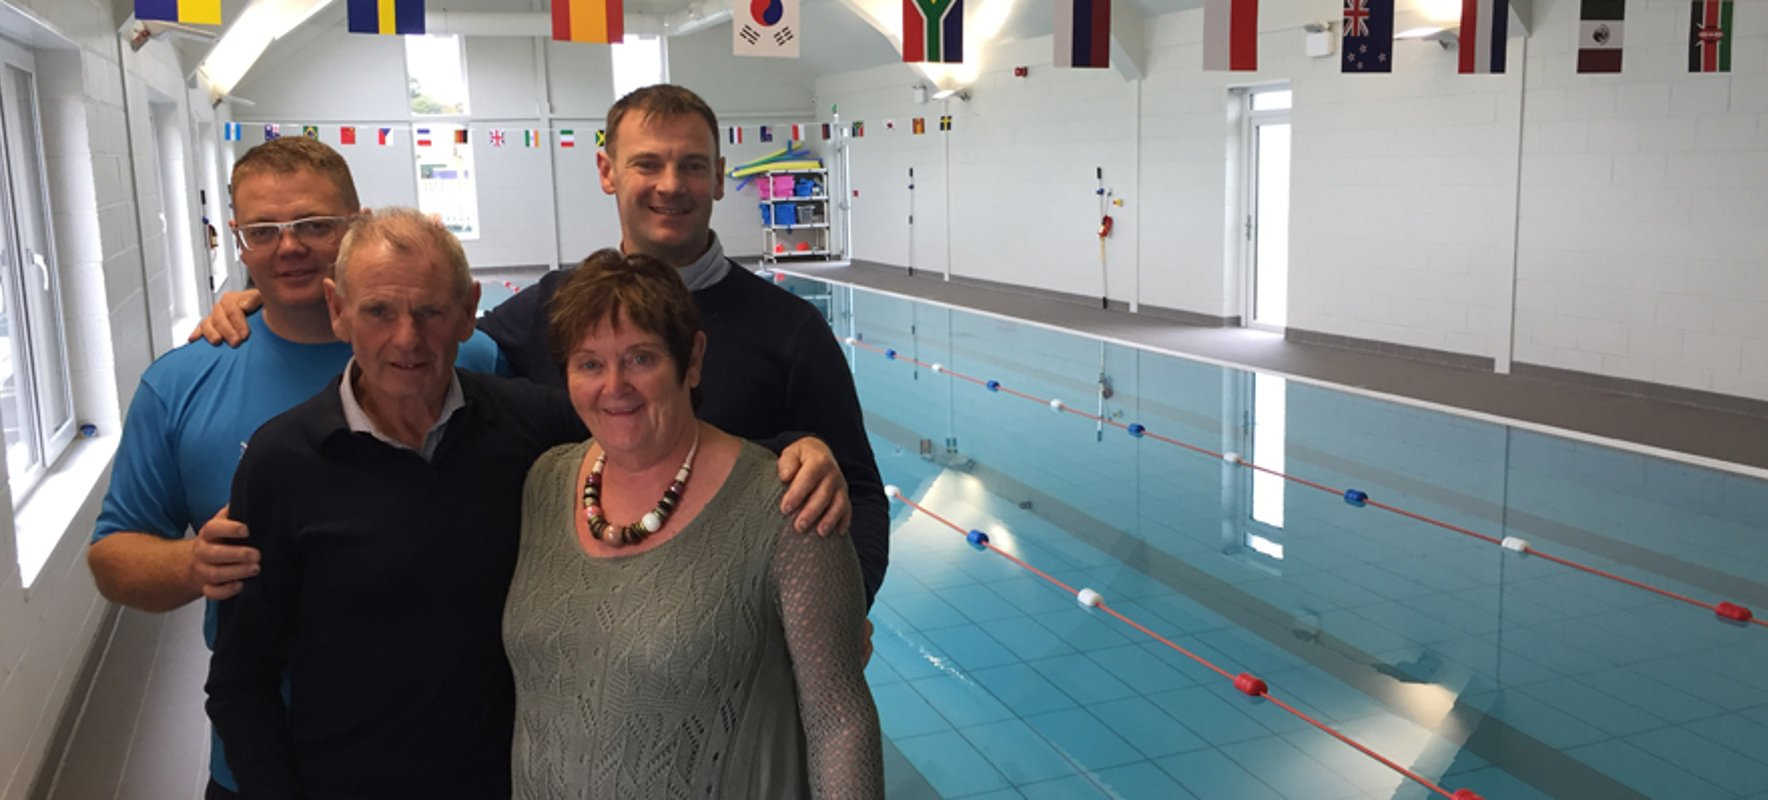 Award-winning open water swimmer opens his own swimming centre